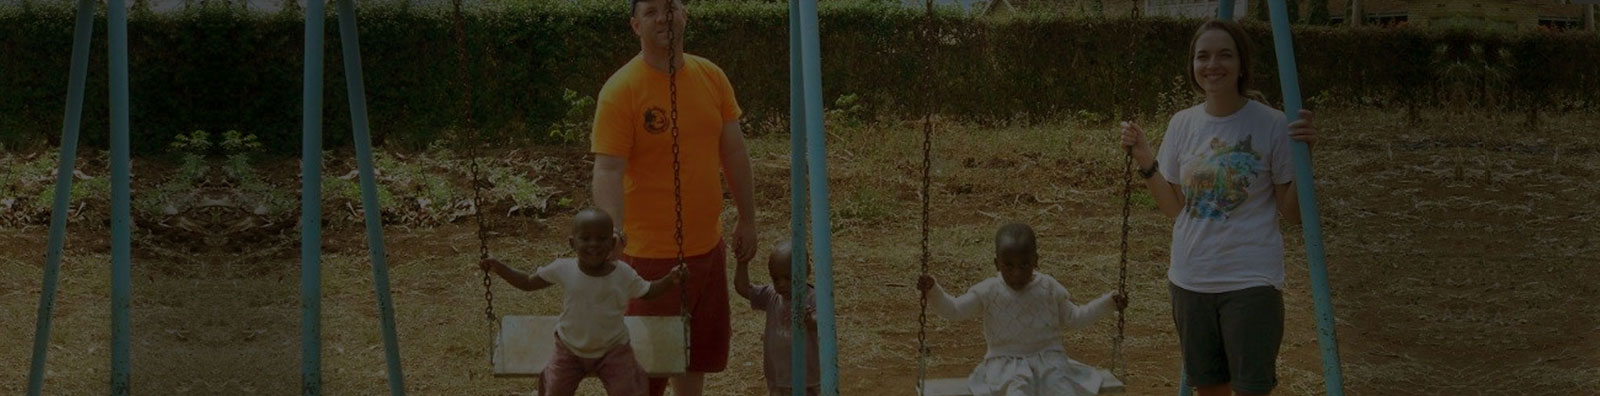 Volunteer in Ghana